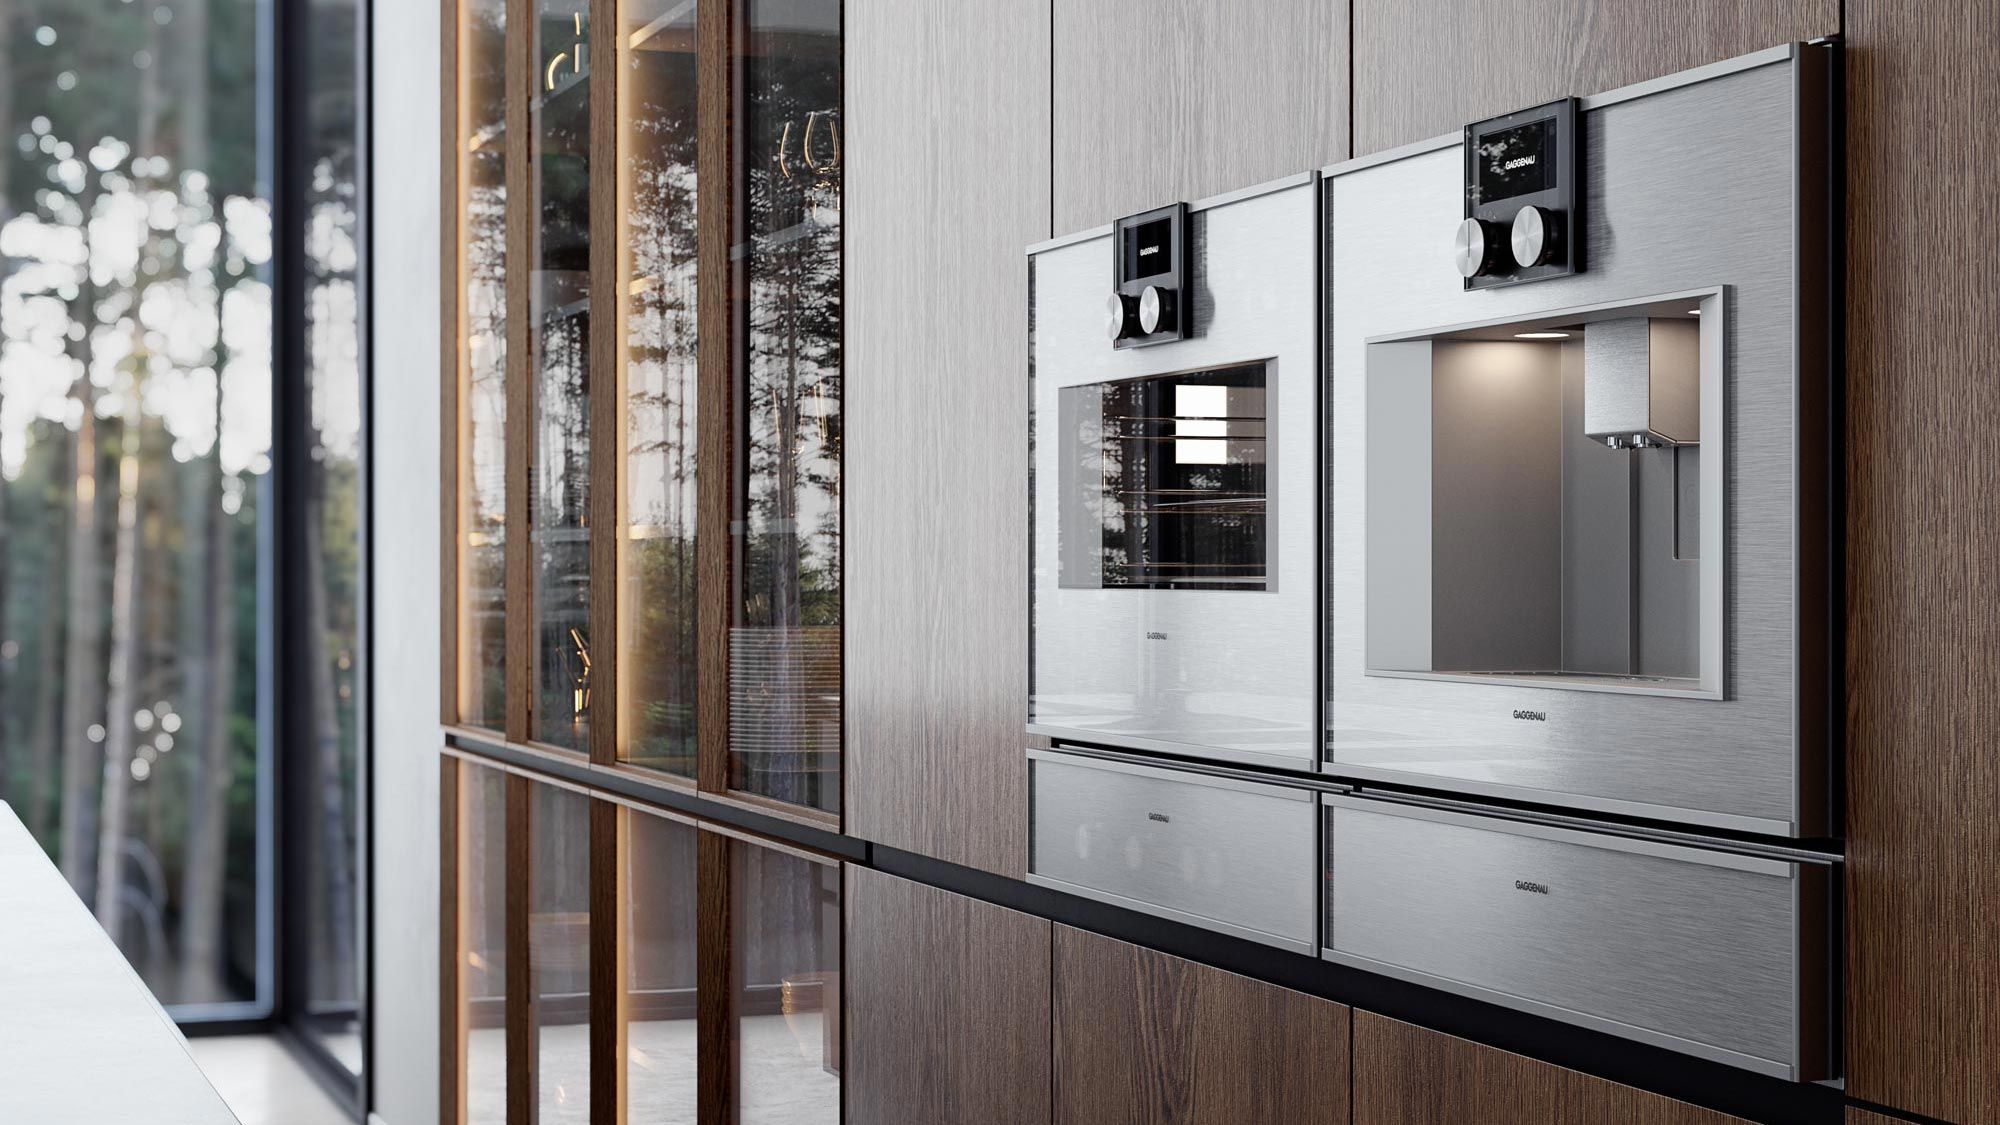 Full CG - Home Appliances - Showroom Forrest